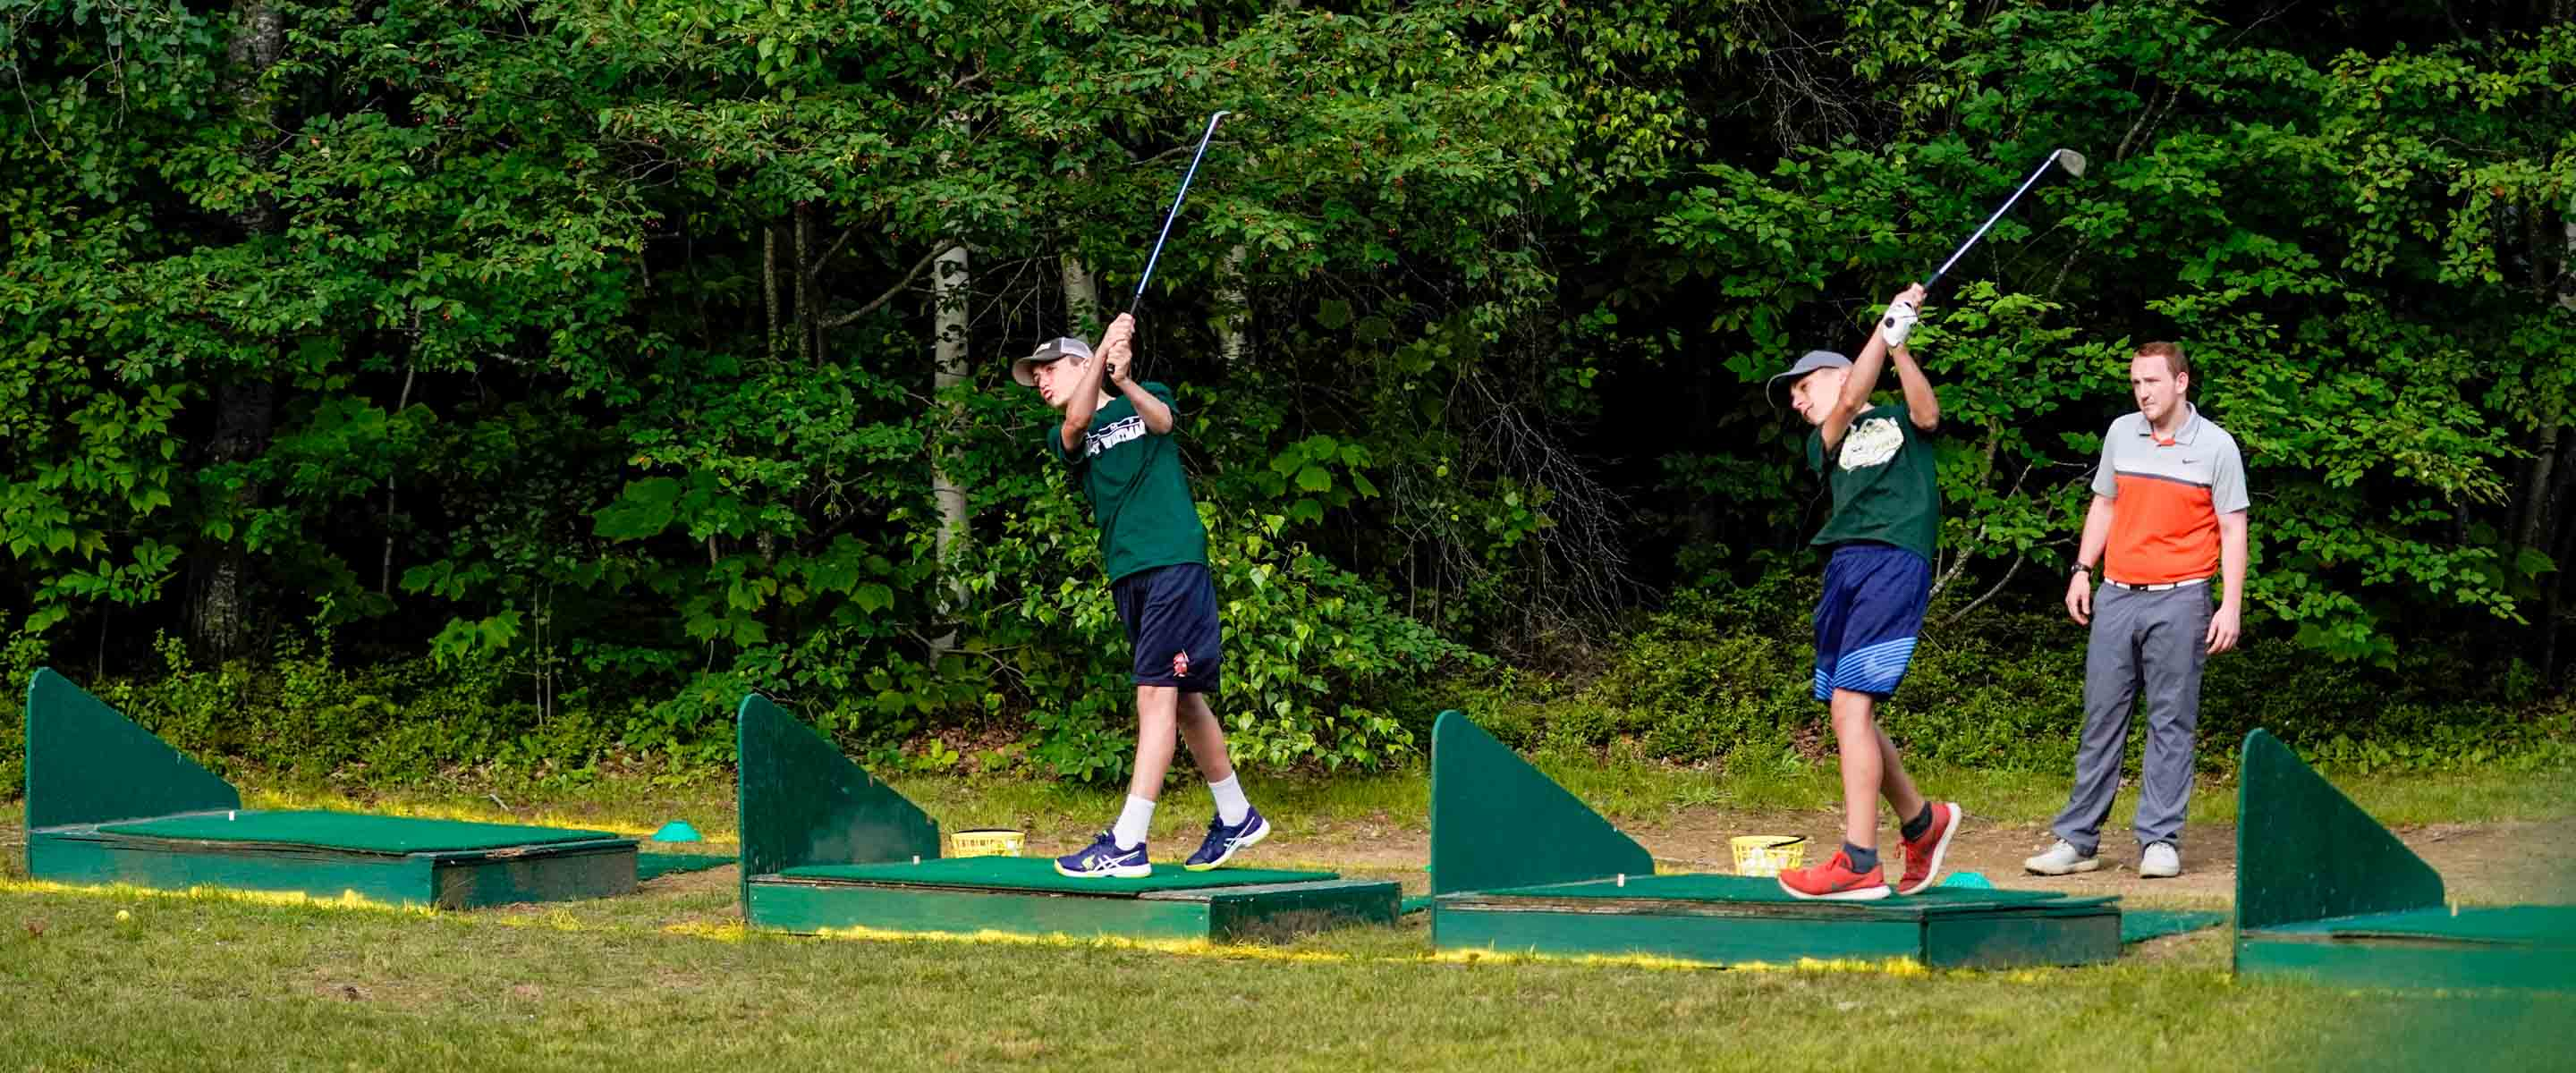 campers practicing their golf drives while an instructor watches